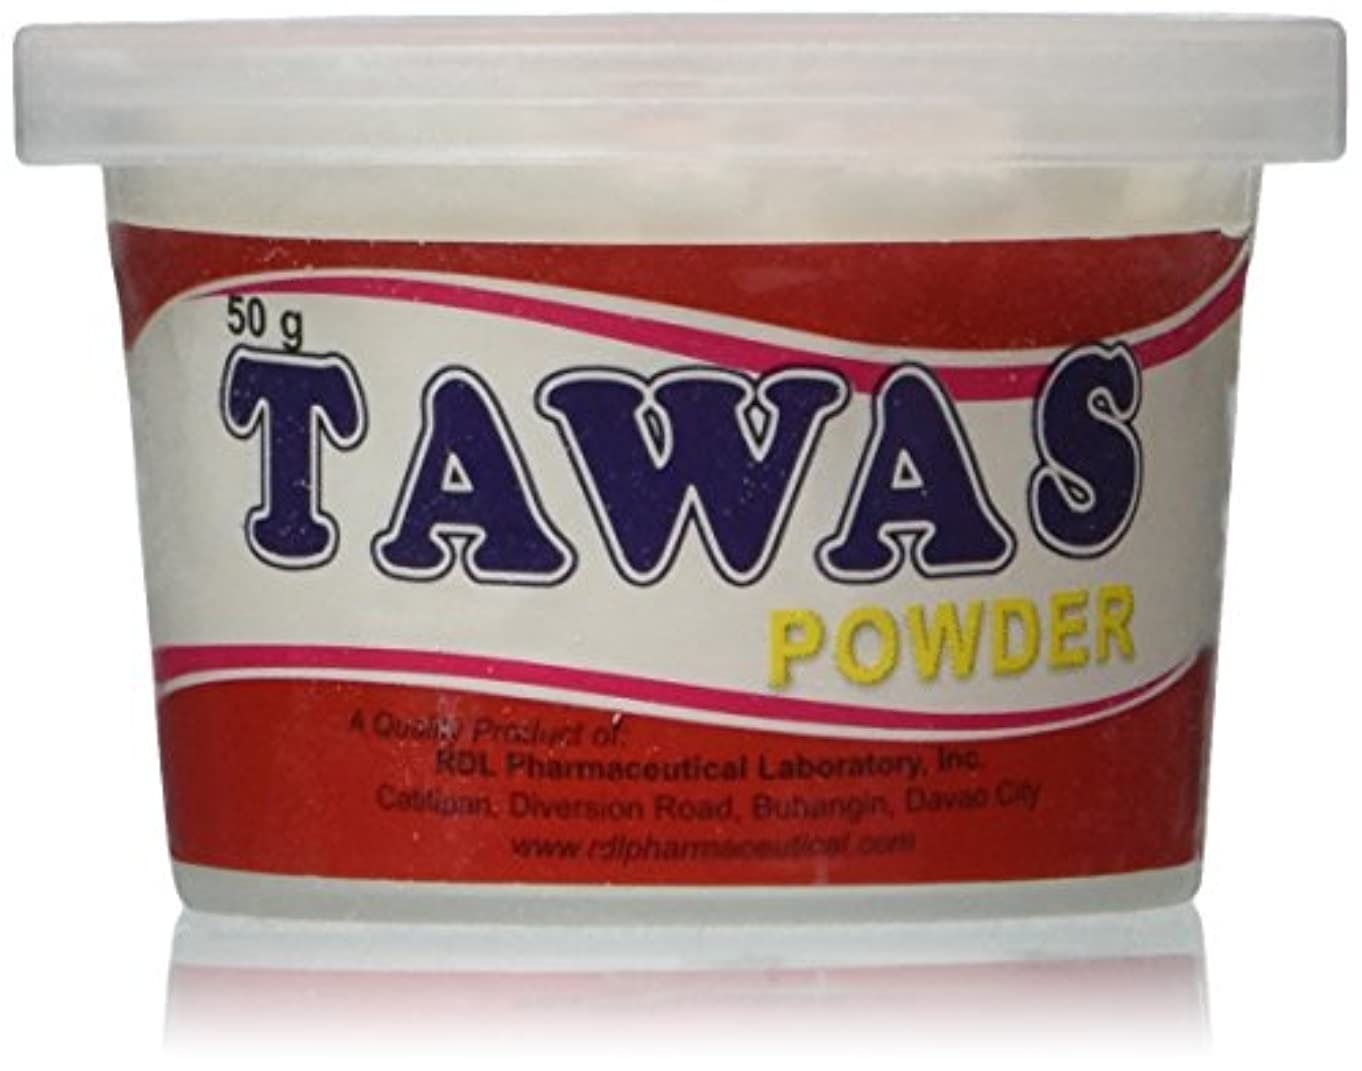 近傍デジタルトロリーバスRDL Tawas Powder (Alum Powder) 50grams (Red) by RDL